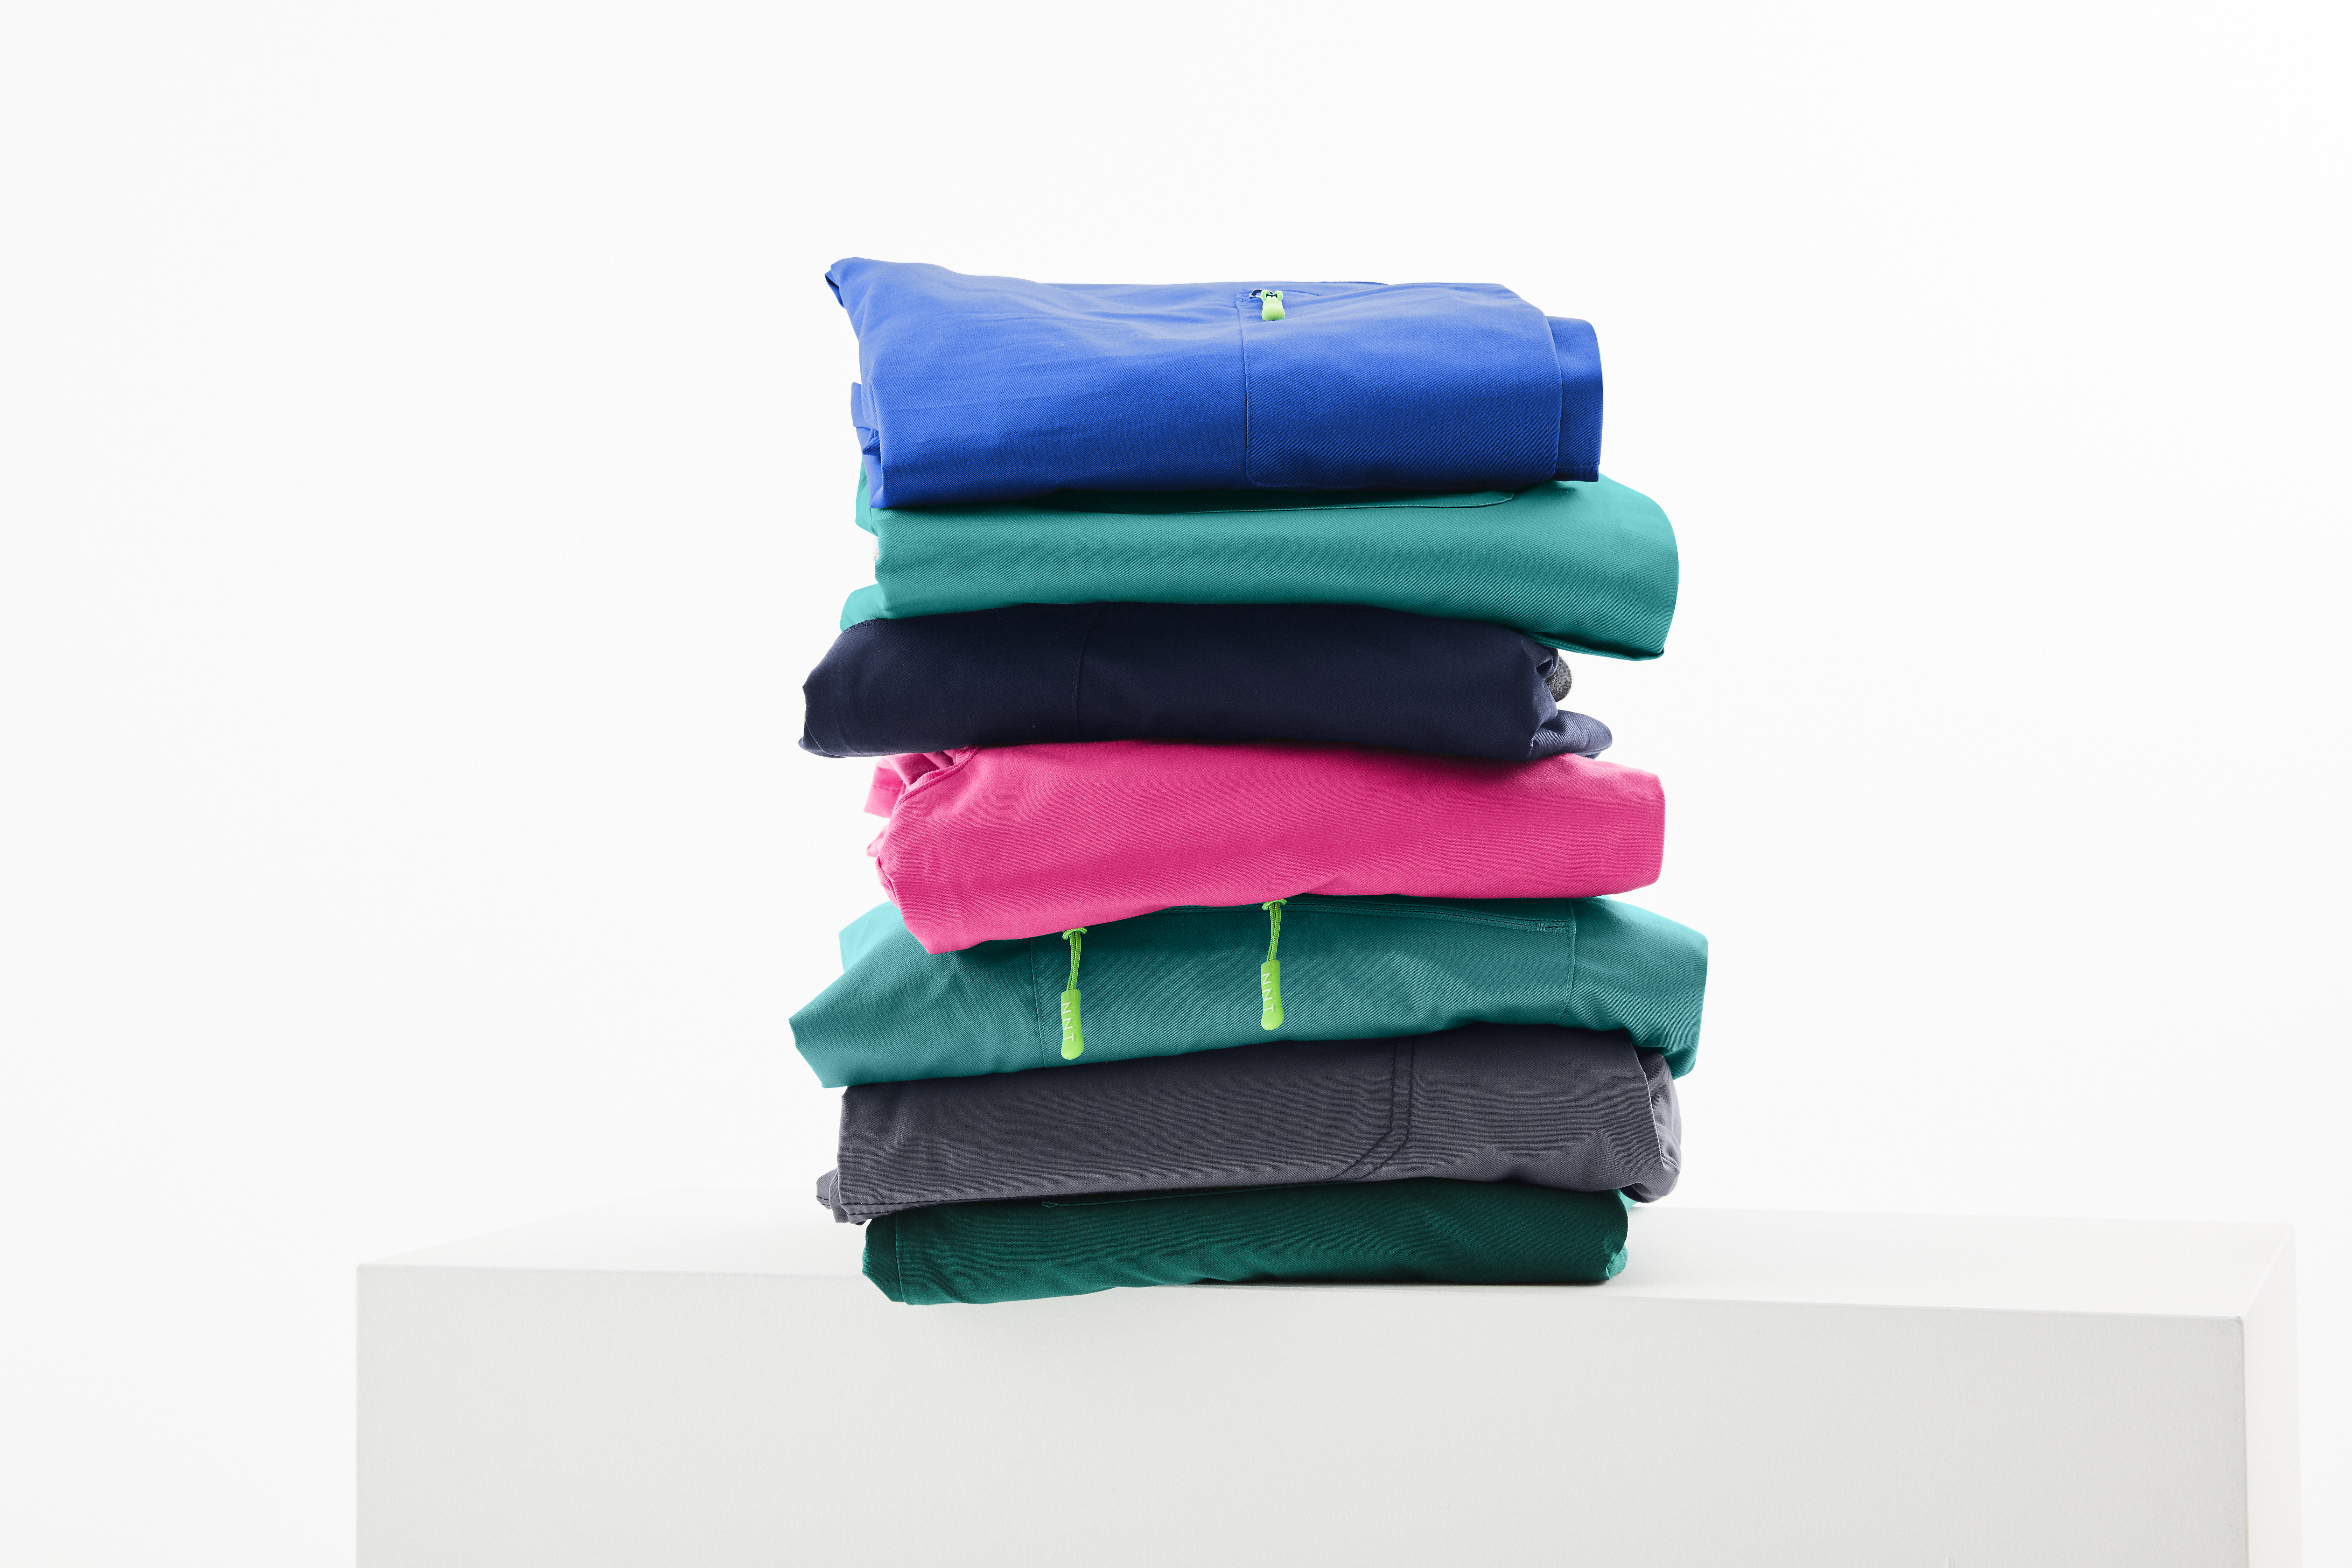 Time to scrub up - 5 tips for washing scrubs